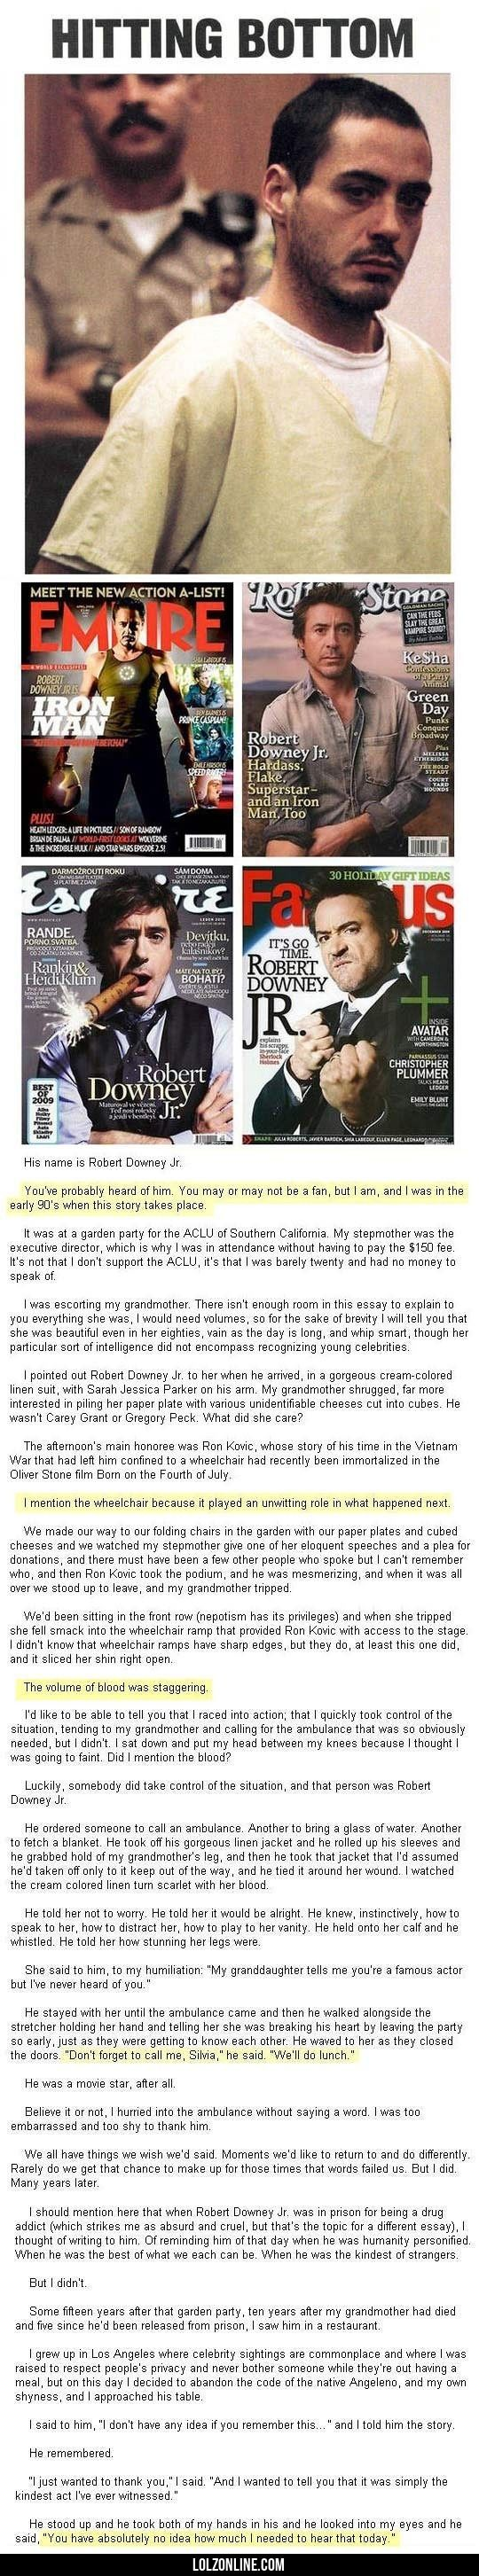 What Robert Downey Jr. Did When He Was At His Worst #lol #haha #funny